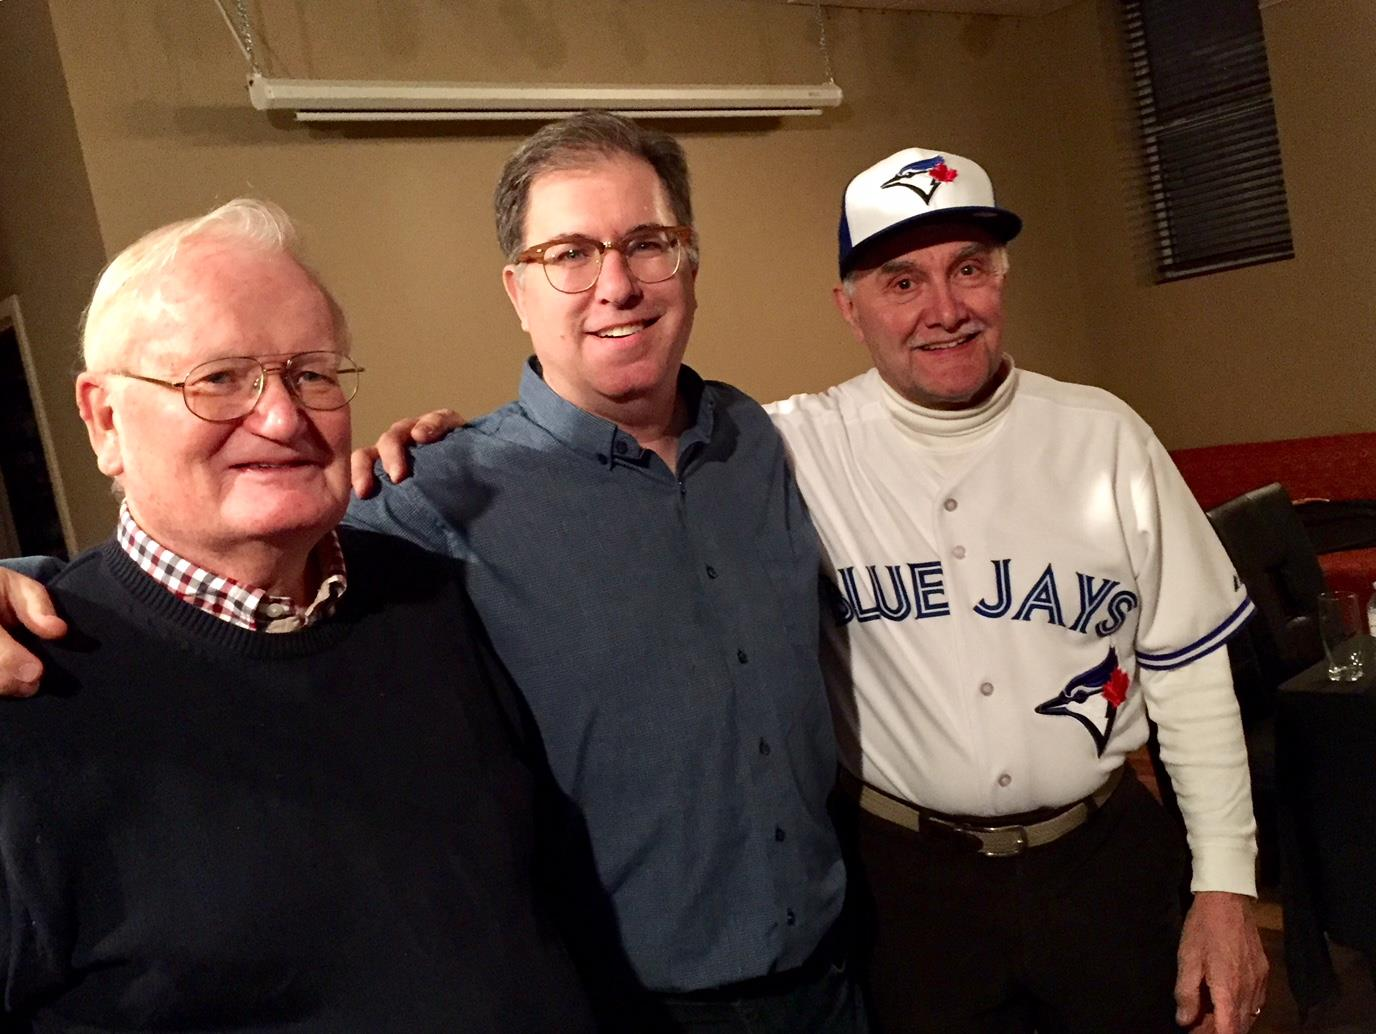 Simcoe Rotary Club President Hadley Jackson, Blue Jays announcer Mike Wilner and fan Dennis Craddick.